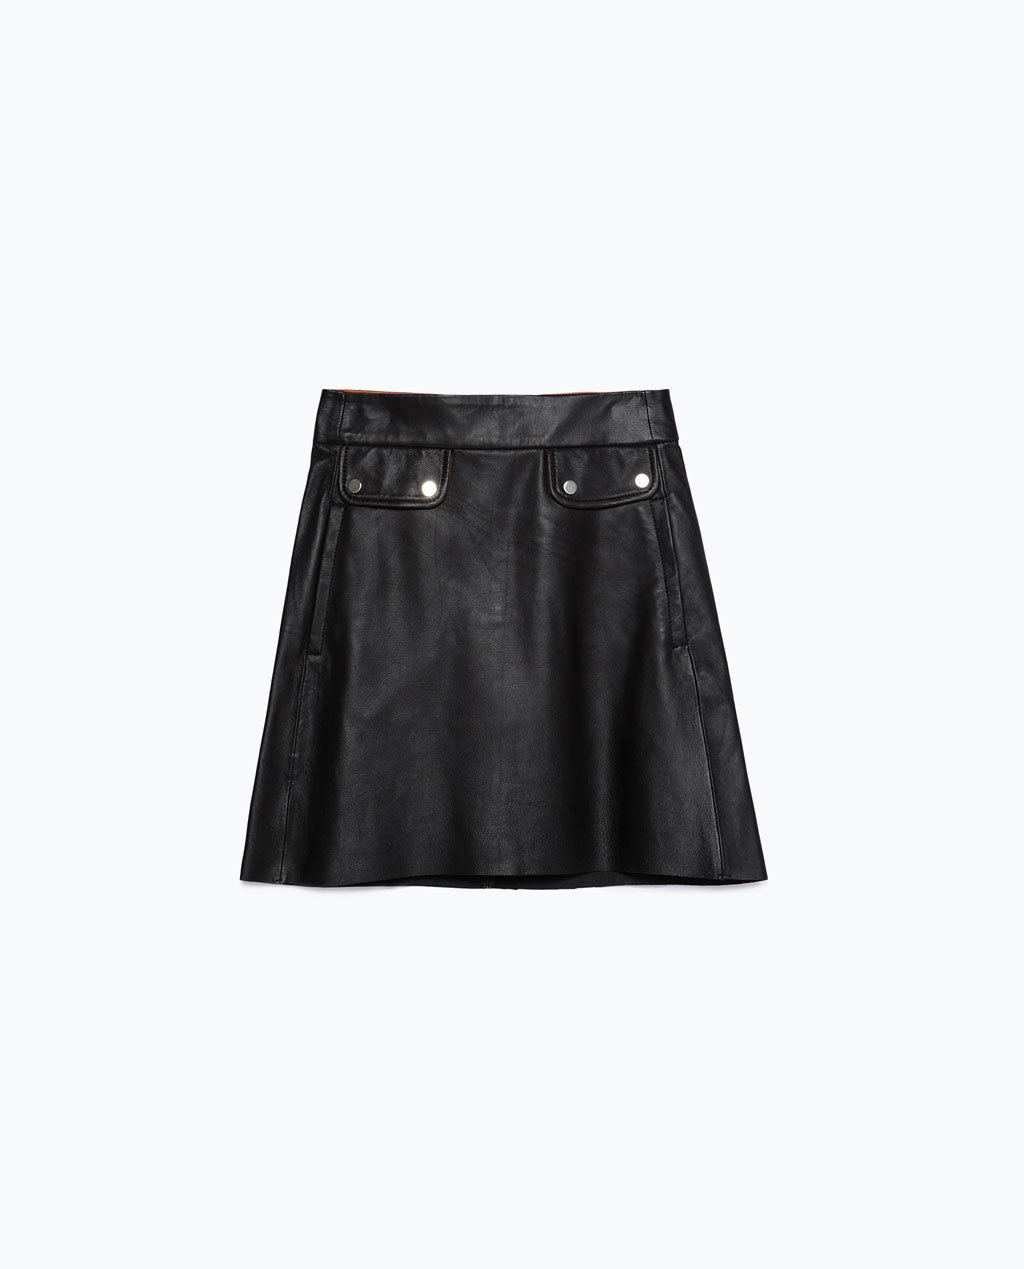 Leather Skirt - length: mid thigh; pattern: plain; fit: loose/voluminous; waist: mid/regular rise; predominant colour: black; occasions: casual, evening; style: a-line; fibres: leather - stretch; texture group: leather; pattern type: fabric; season: a/w 2015; wardrobe: highlight